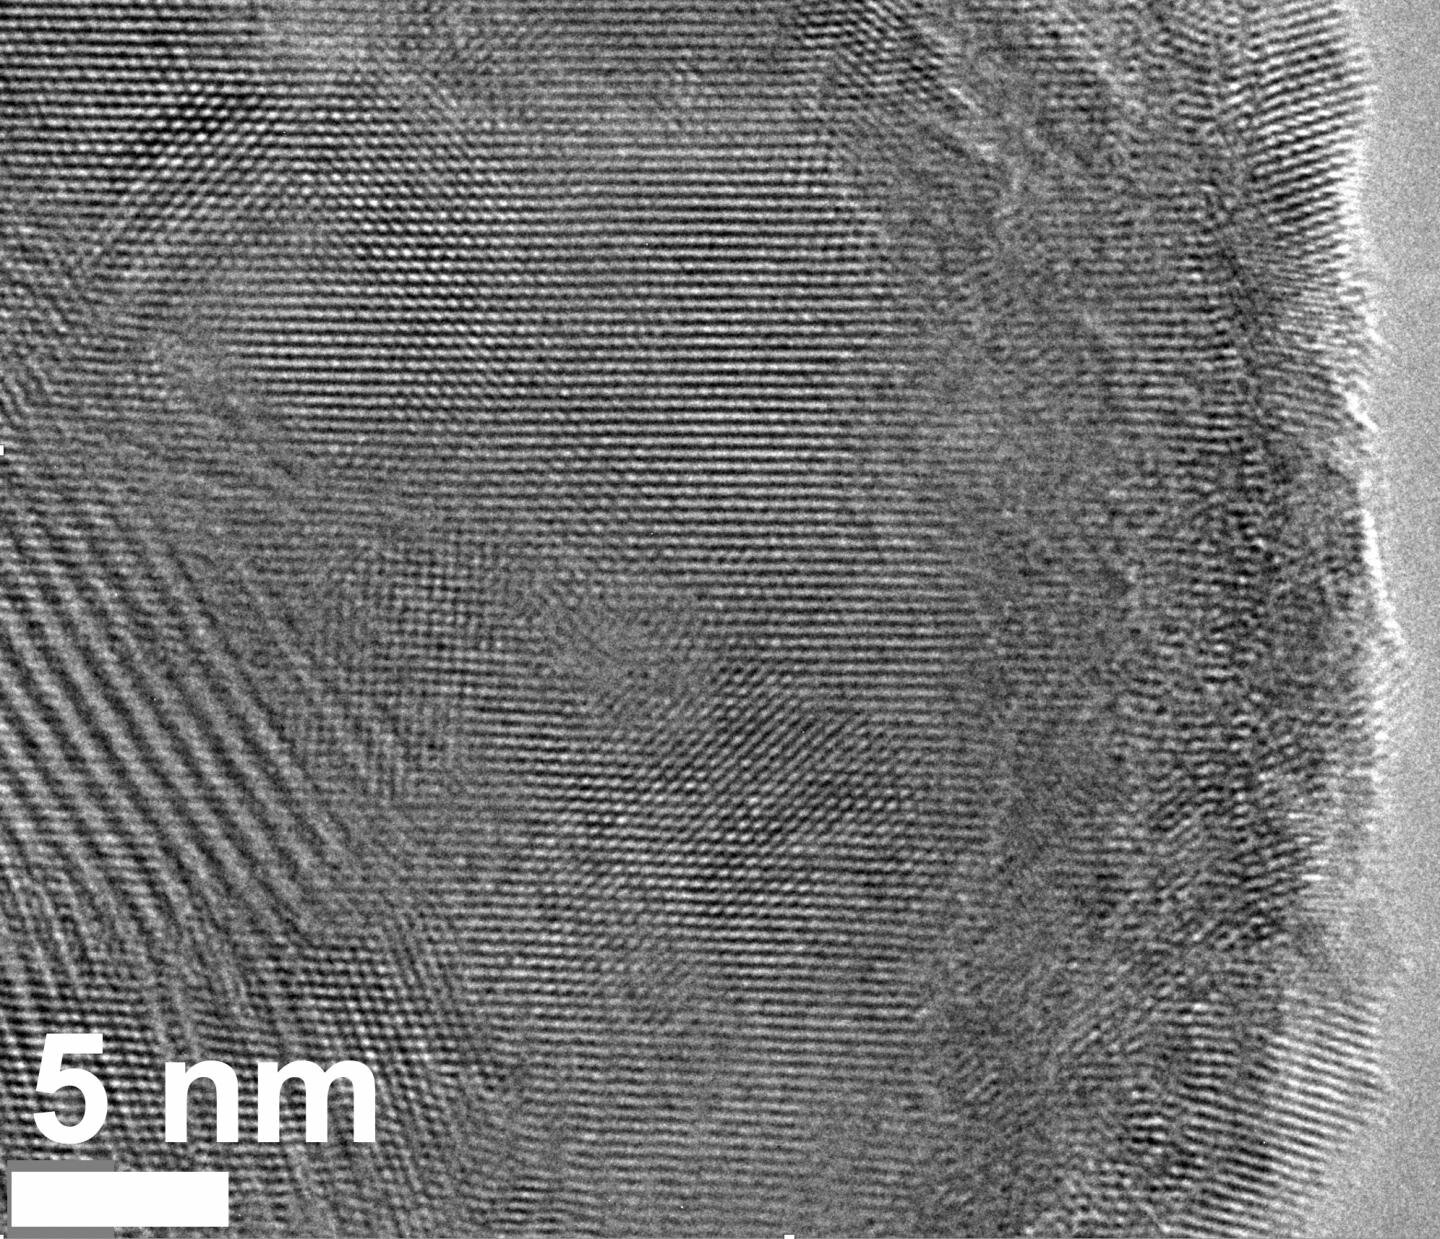 'Flashed' nanodiamonds are just a phase, research team finds